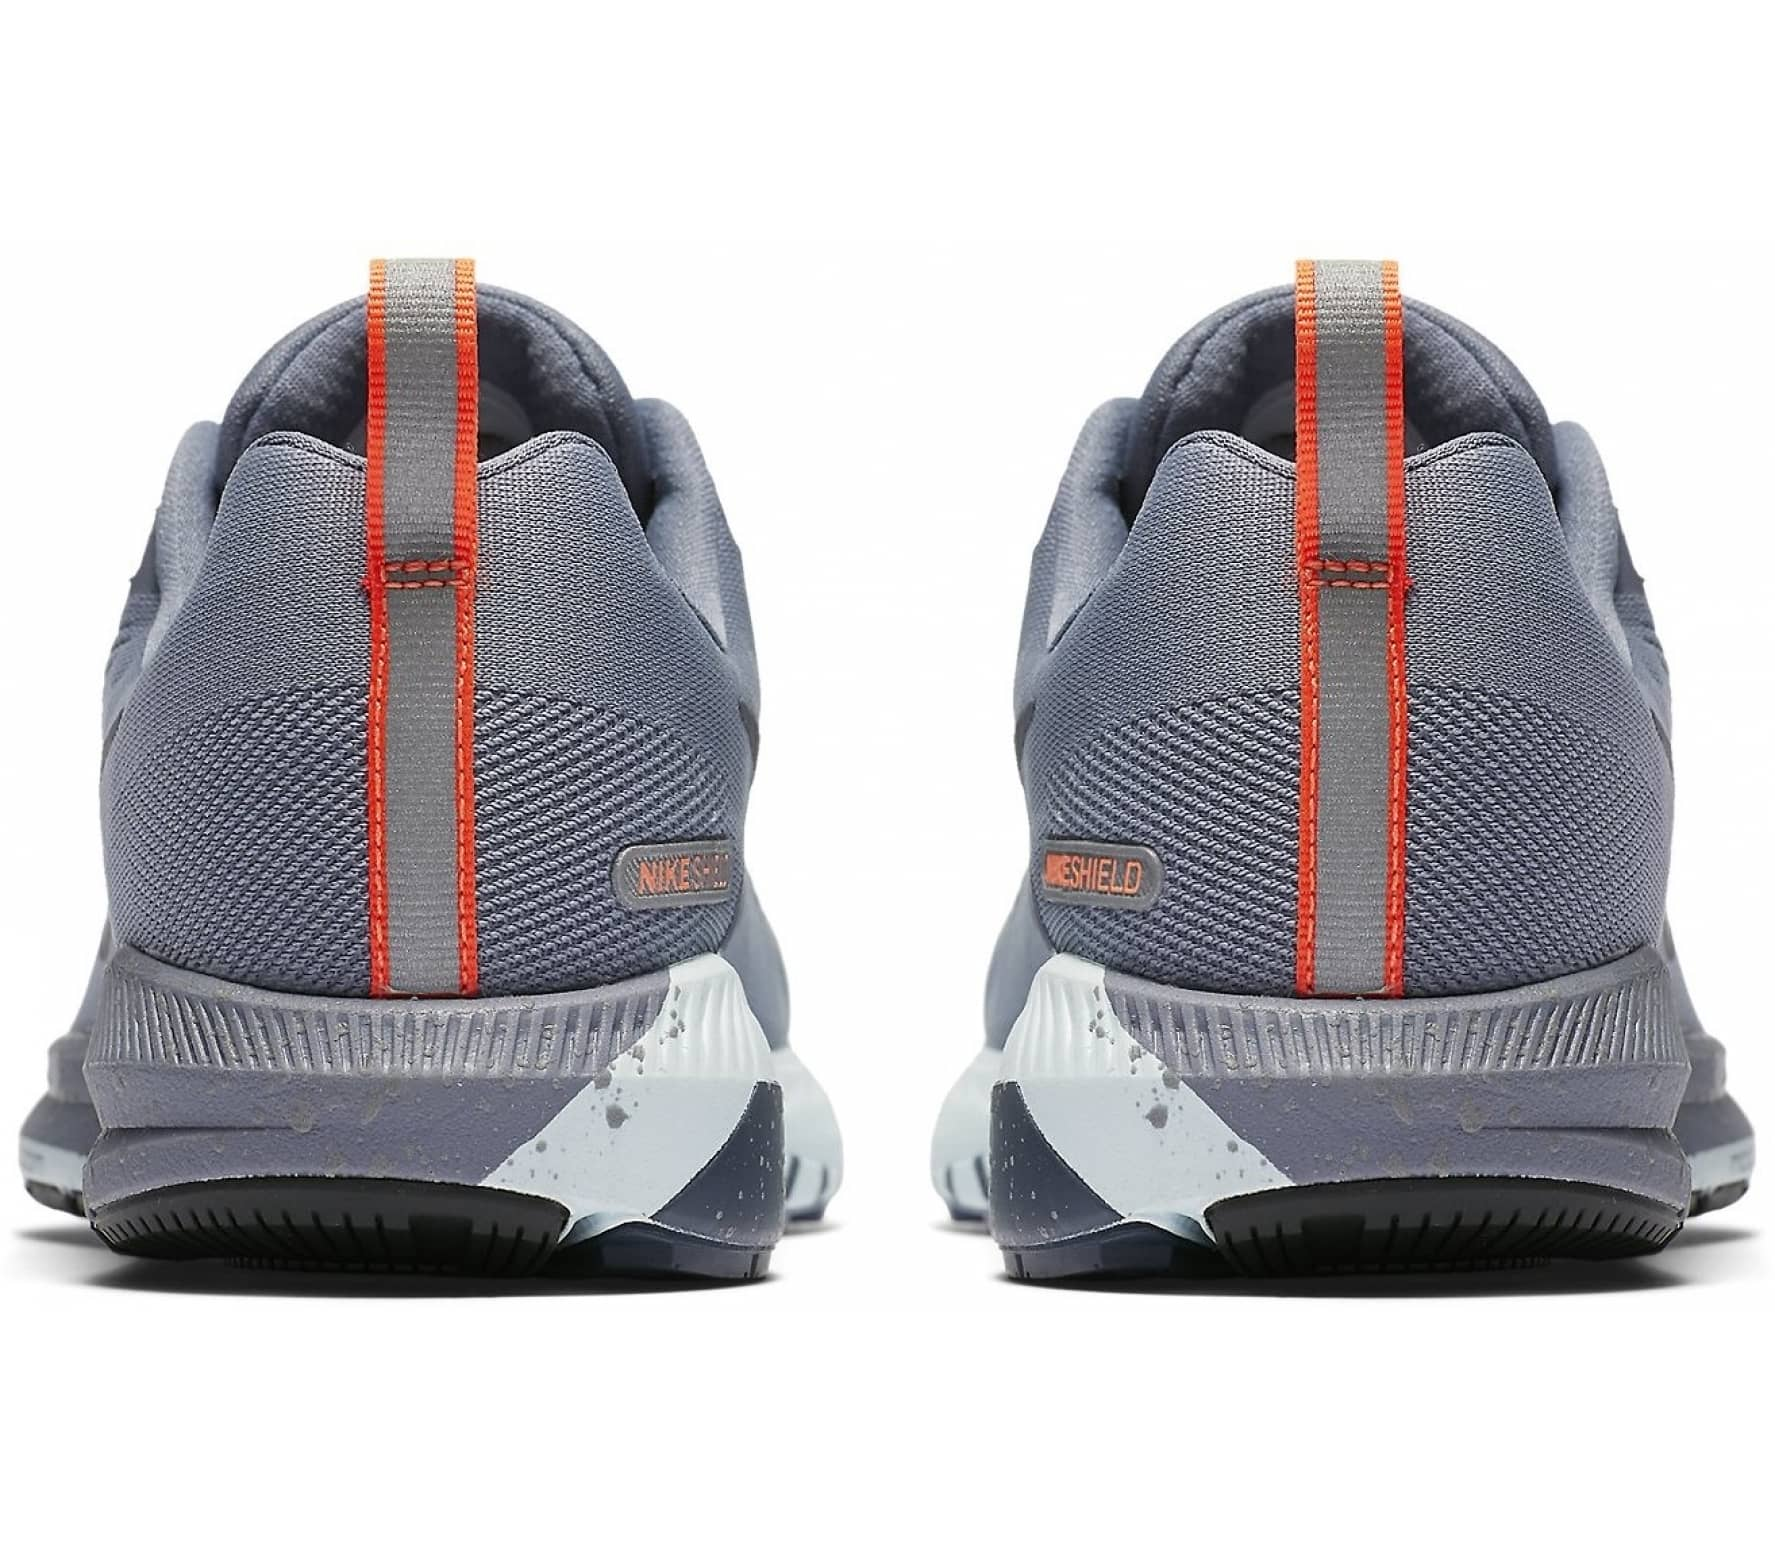 f0b4a1190ba Nike - Air Zoom Structure 21 Shield Mujer Zapatos para correr (azul gris)